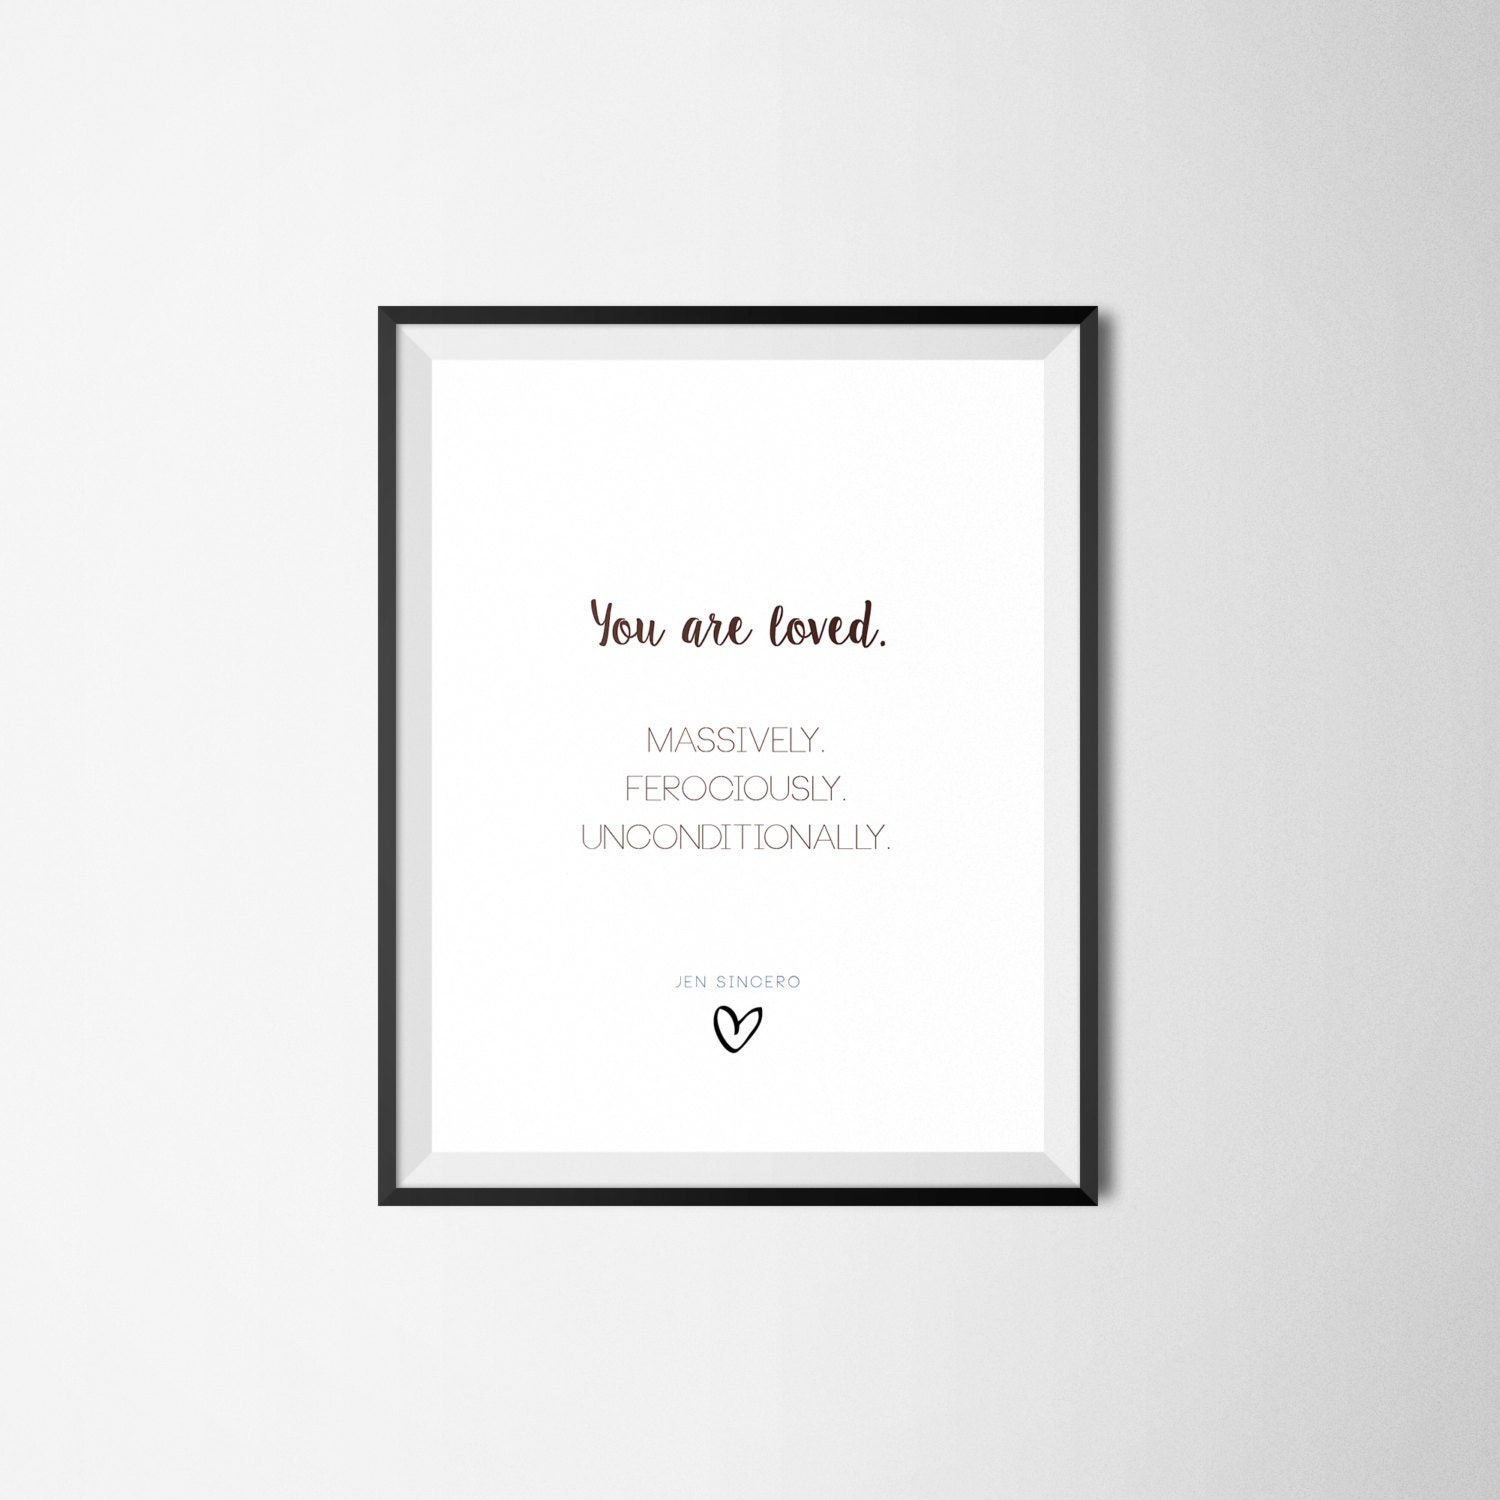 Jen Sincero Quotes You Are Loved Jen Sincero You're A Badass 8X10 Print